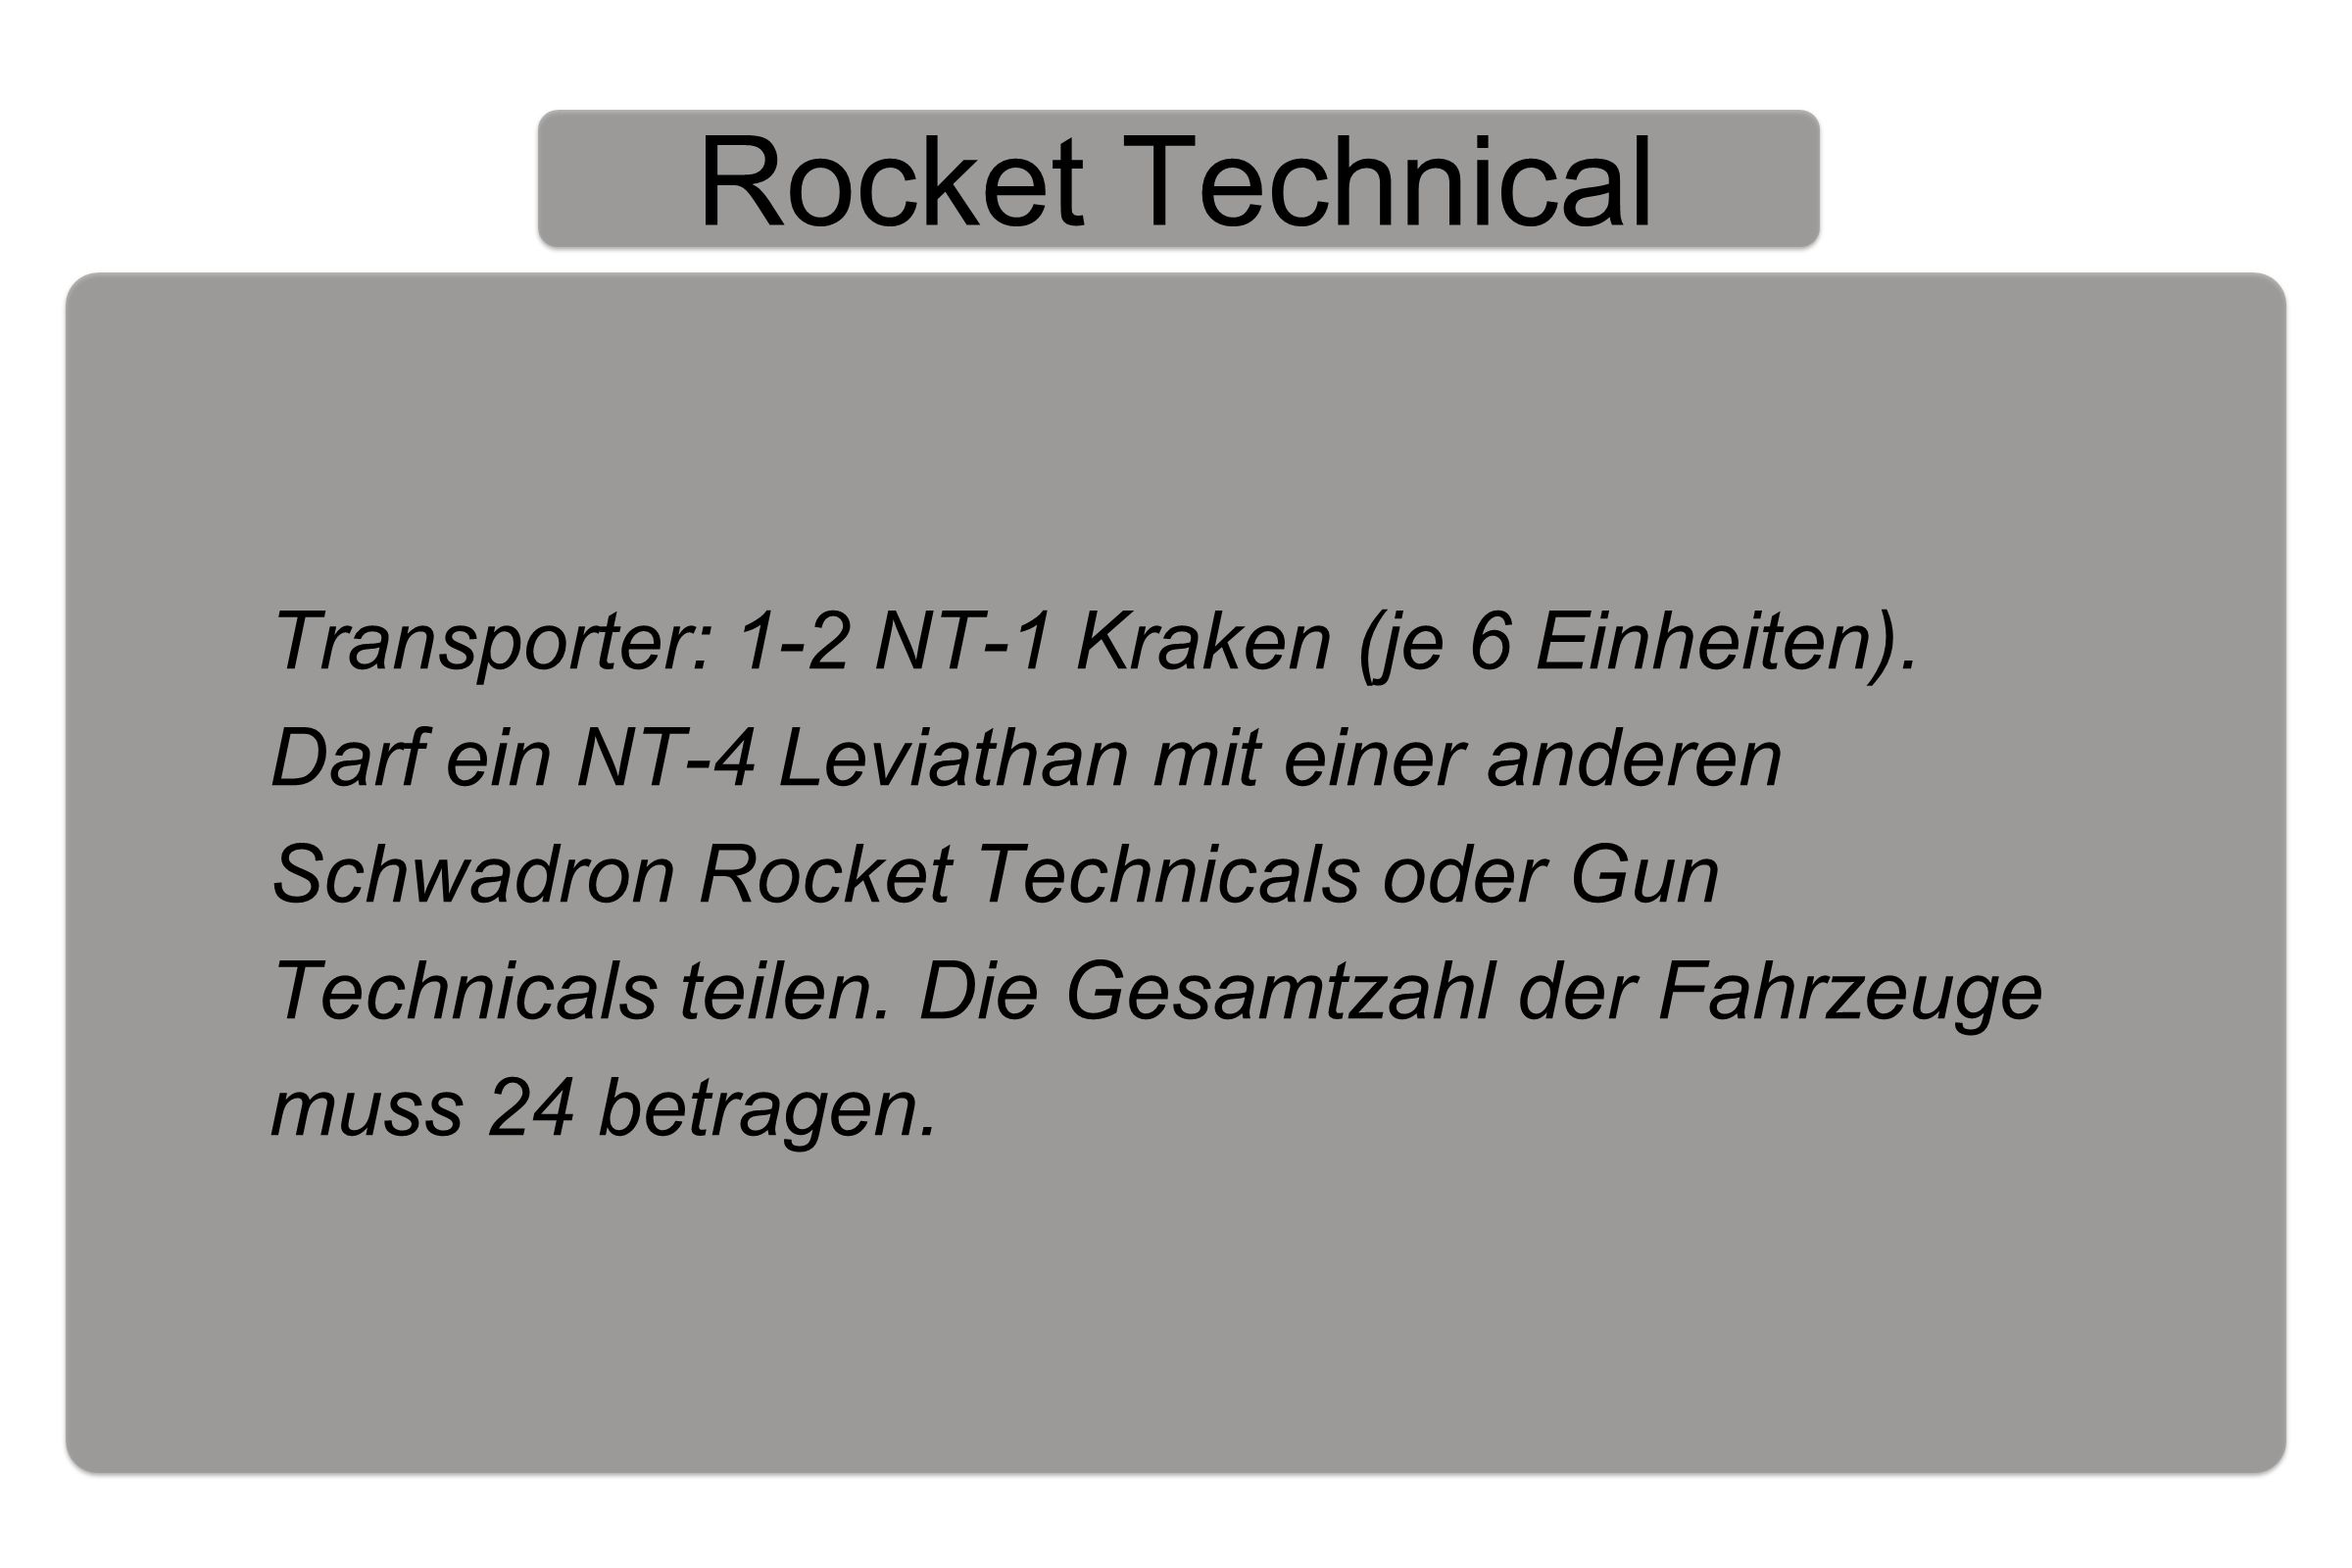 Rocket Technical Transporter: 1-2 NT-1 Kraken (je 6 Einheiten).